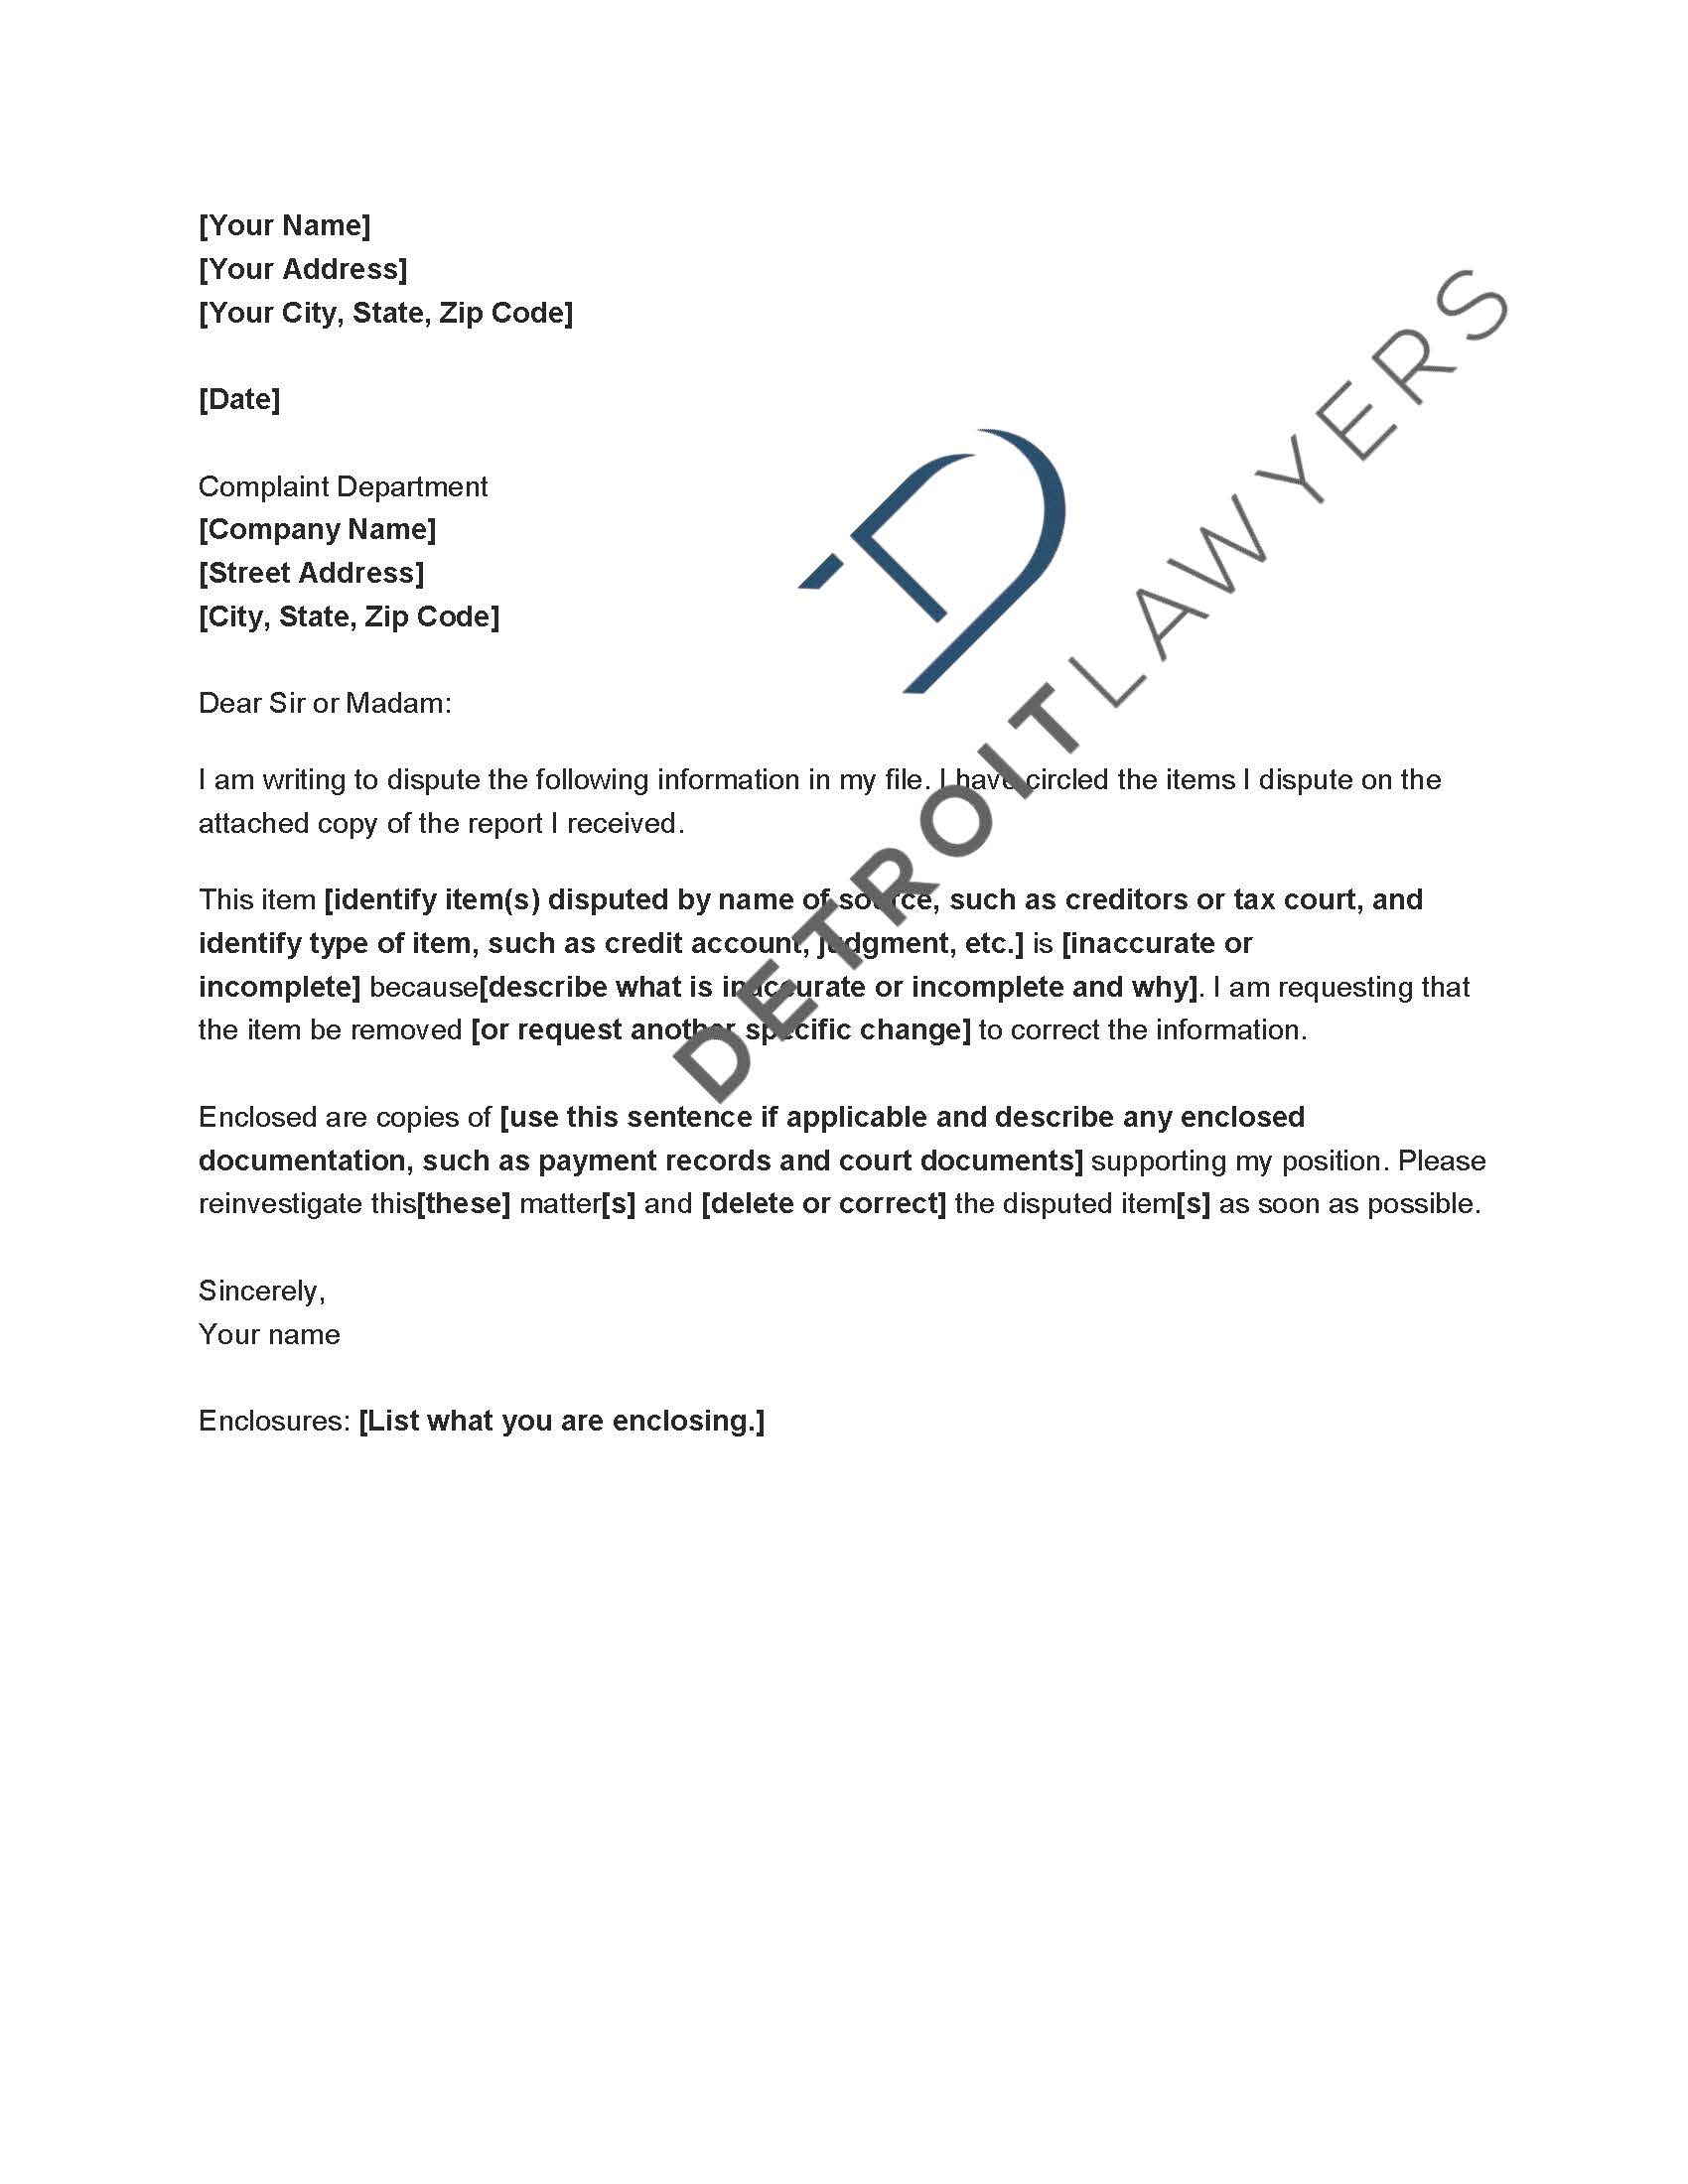 Credit Inquiry Removal Letter Template - How to Write A Dispute Letter to Credit Bureau Image Collections